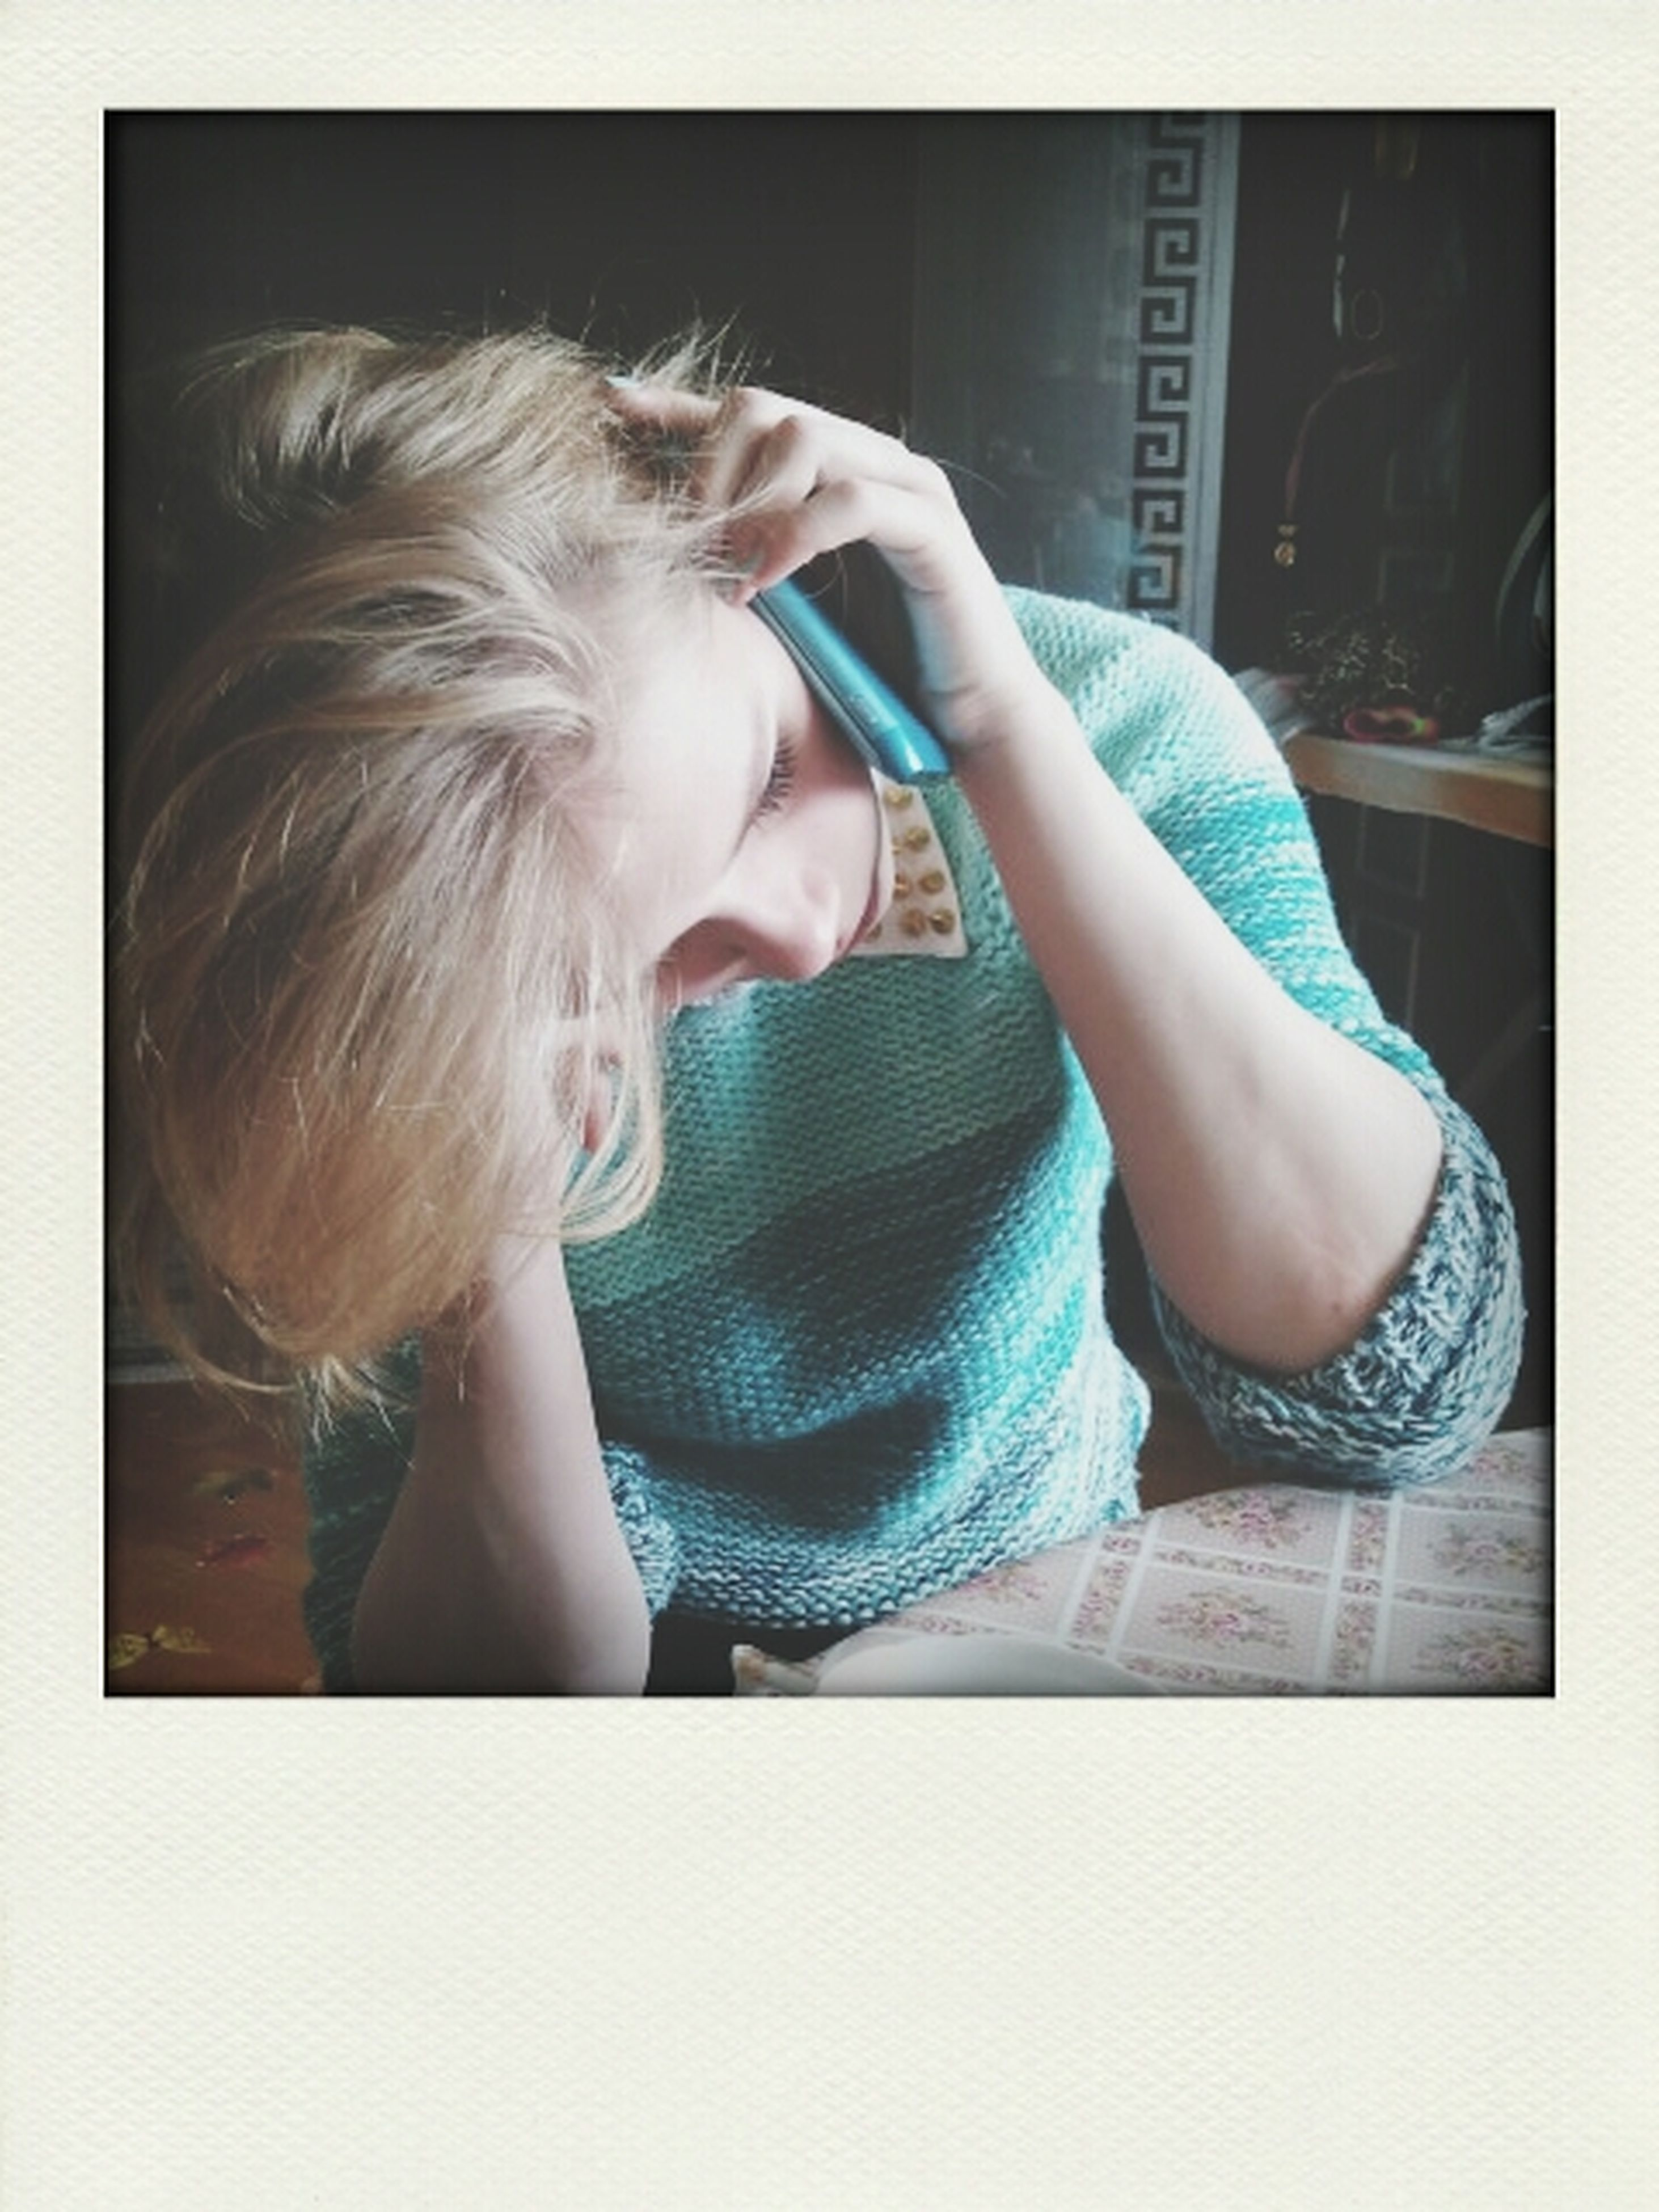 indoors, person, transfer print, lifestyles, childhood, auto post production filter, leisure activity, casual clothing, elementary age, blond hair, home interior, innocence, young adult, relaxation, headshot, young women, waist up, cute